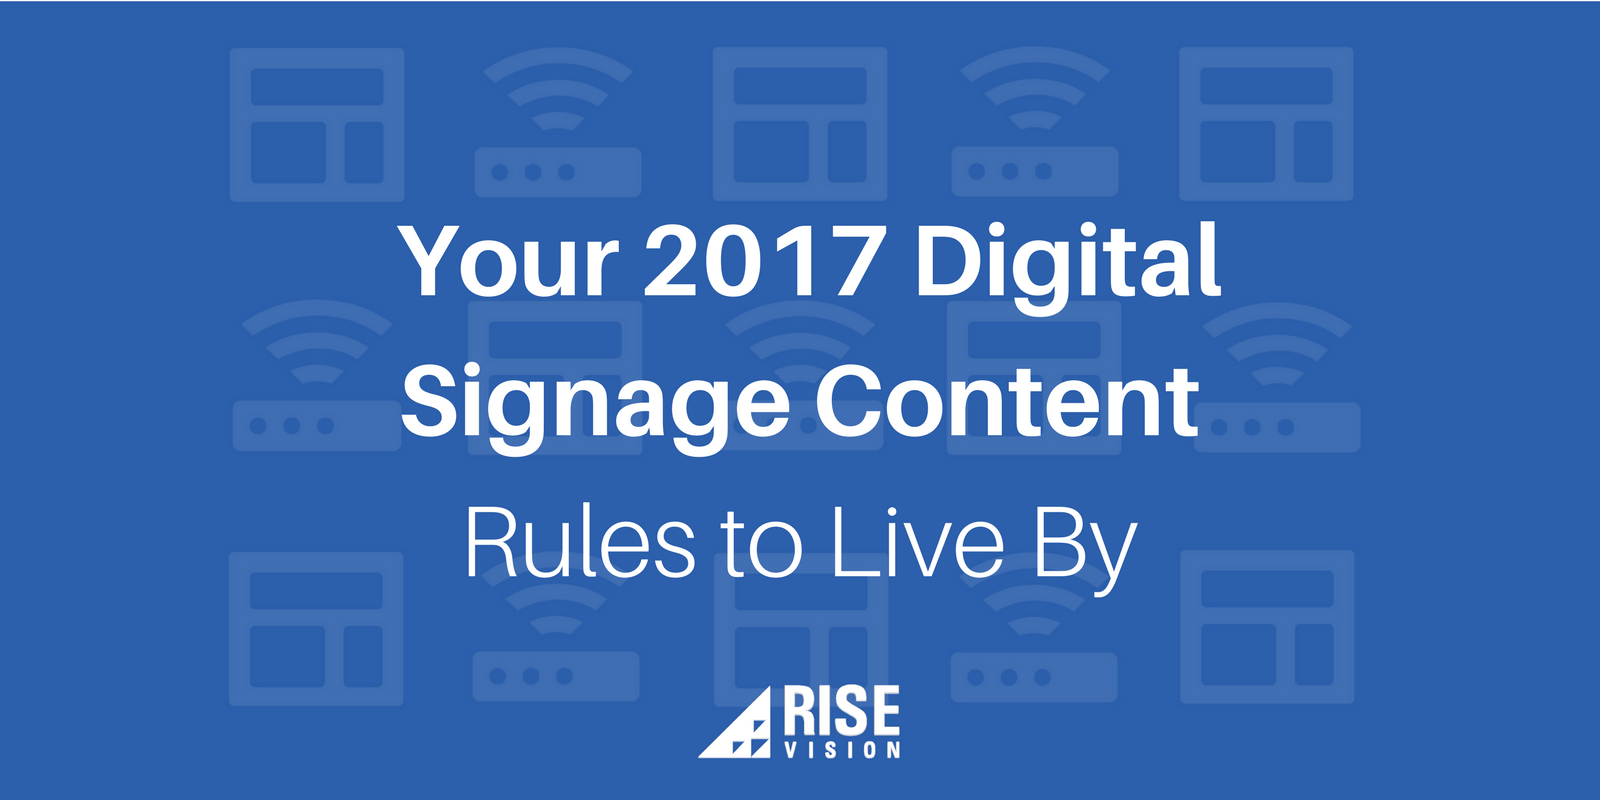 Rise Vision 2017 Digital Signage Content Rules to Live By.png